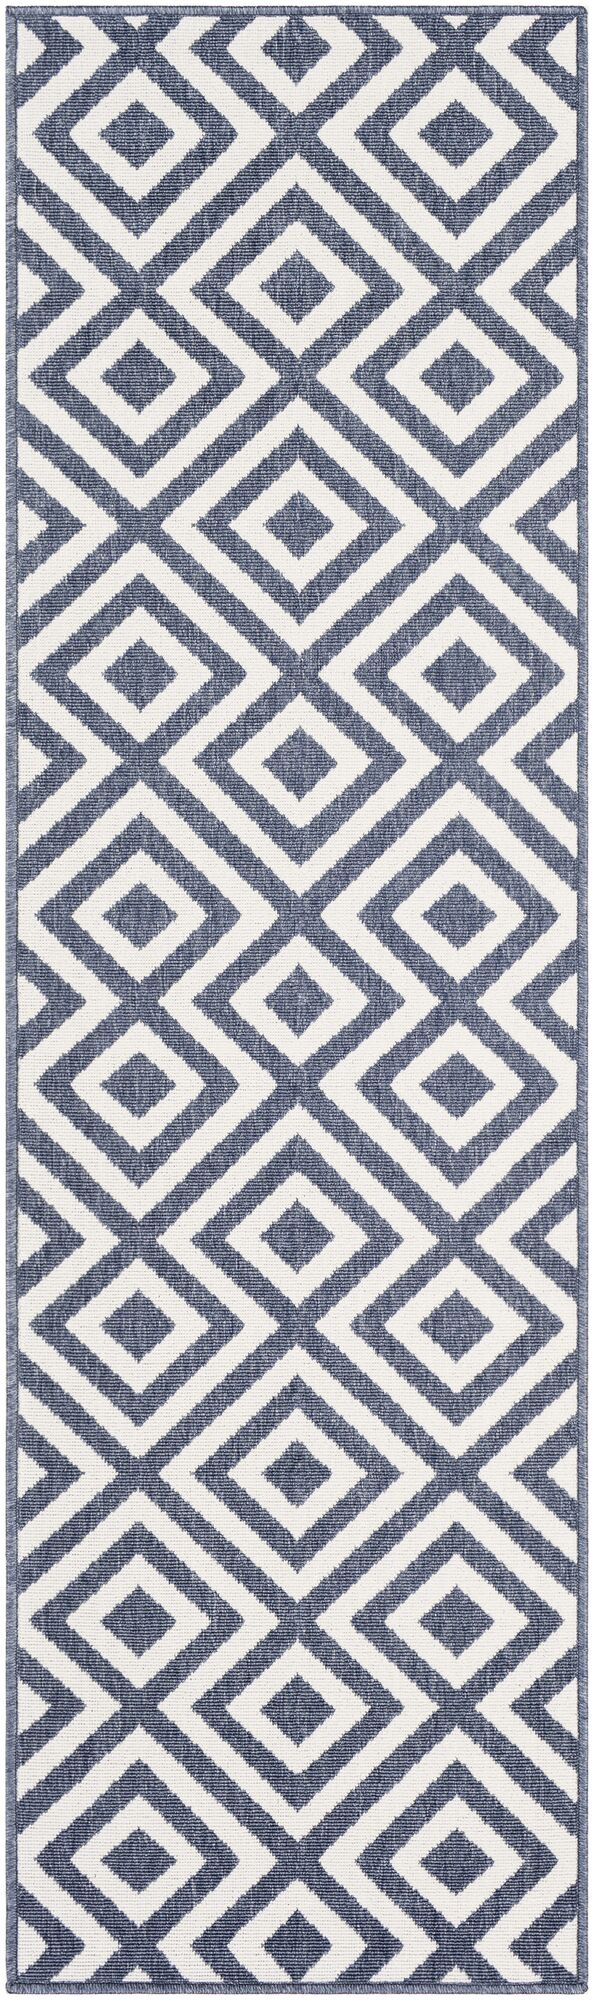 Idabel Geometric Blue Indoor/Outdoor Area Rug Rug Size: Runner 2'3